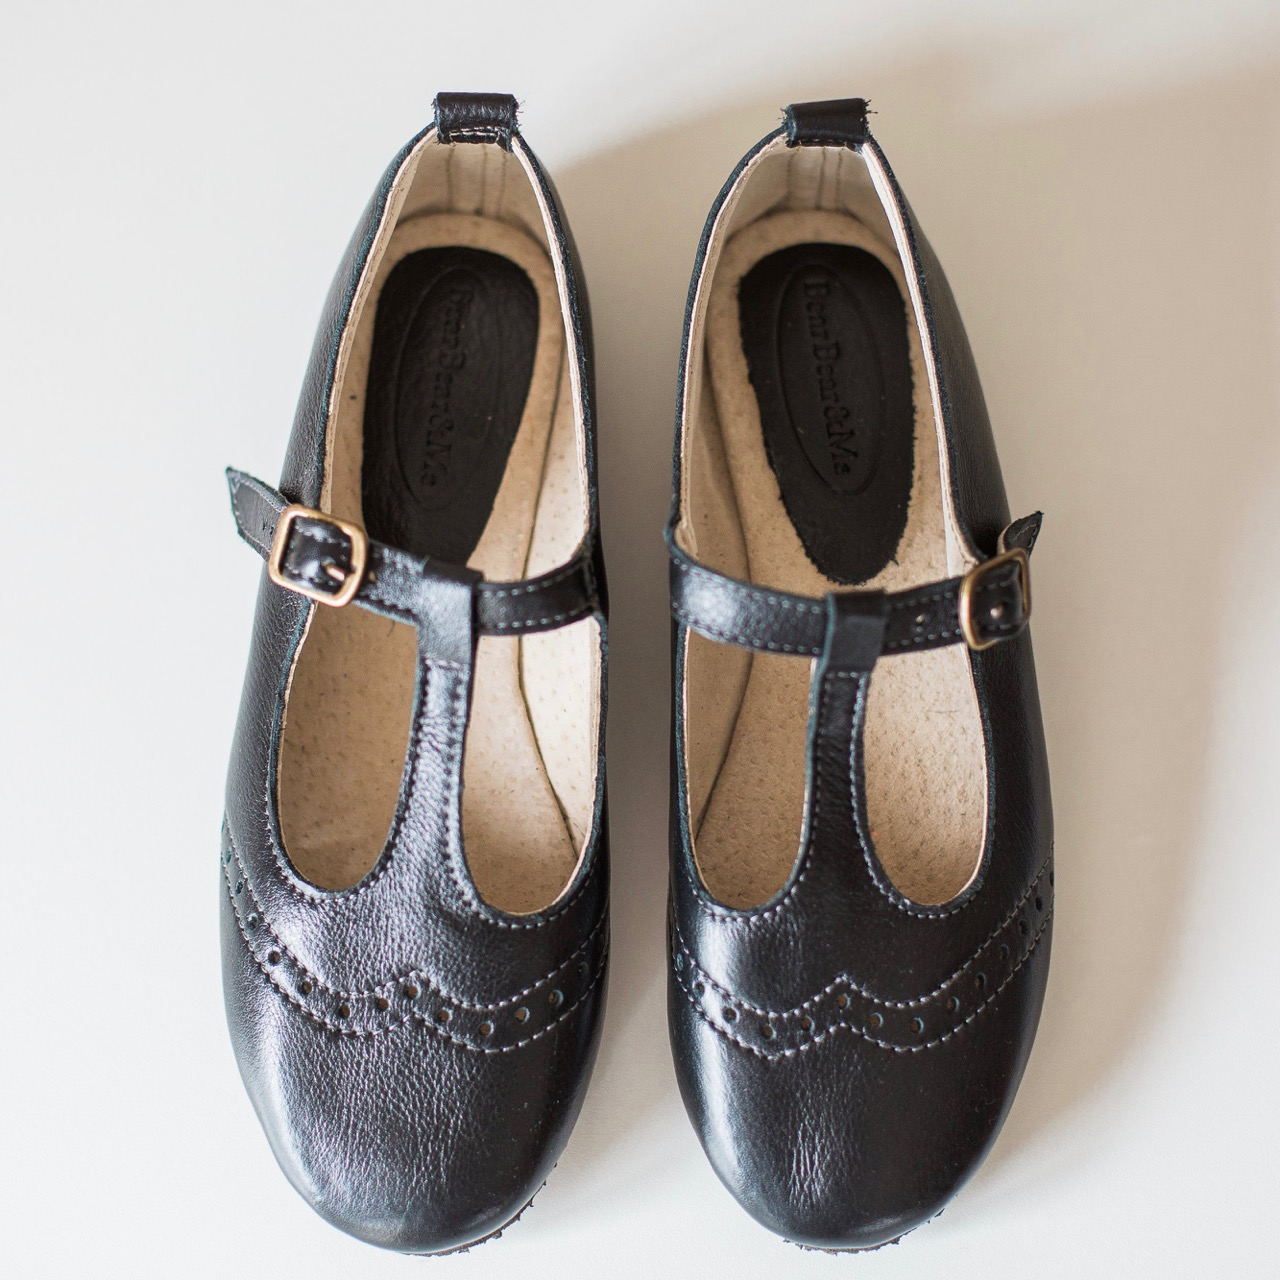 Ladies Black Mary Janes with broguing - LMJ11